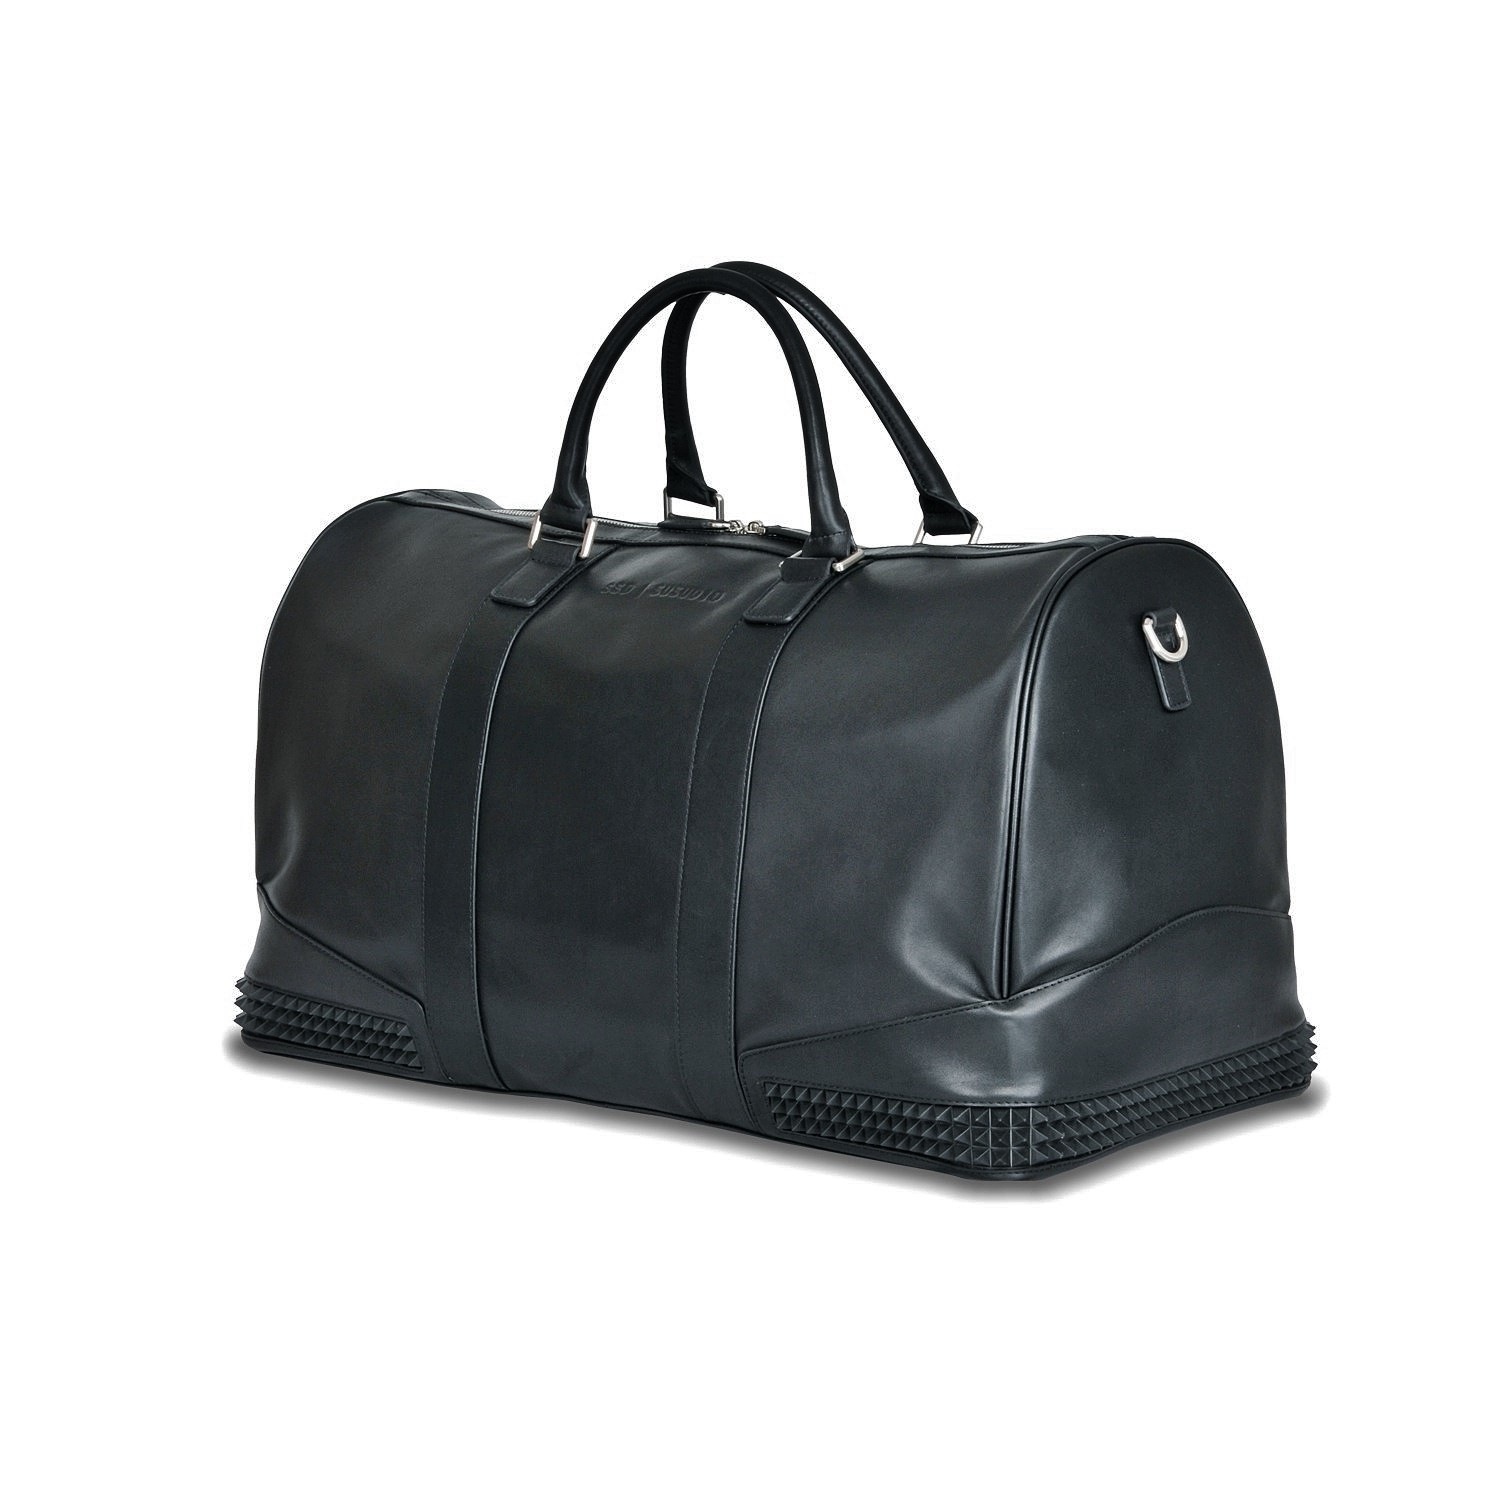 SUSUDIO DUFFELBAG SIDE